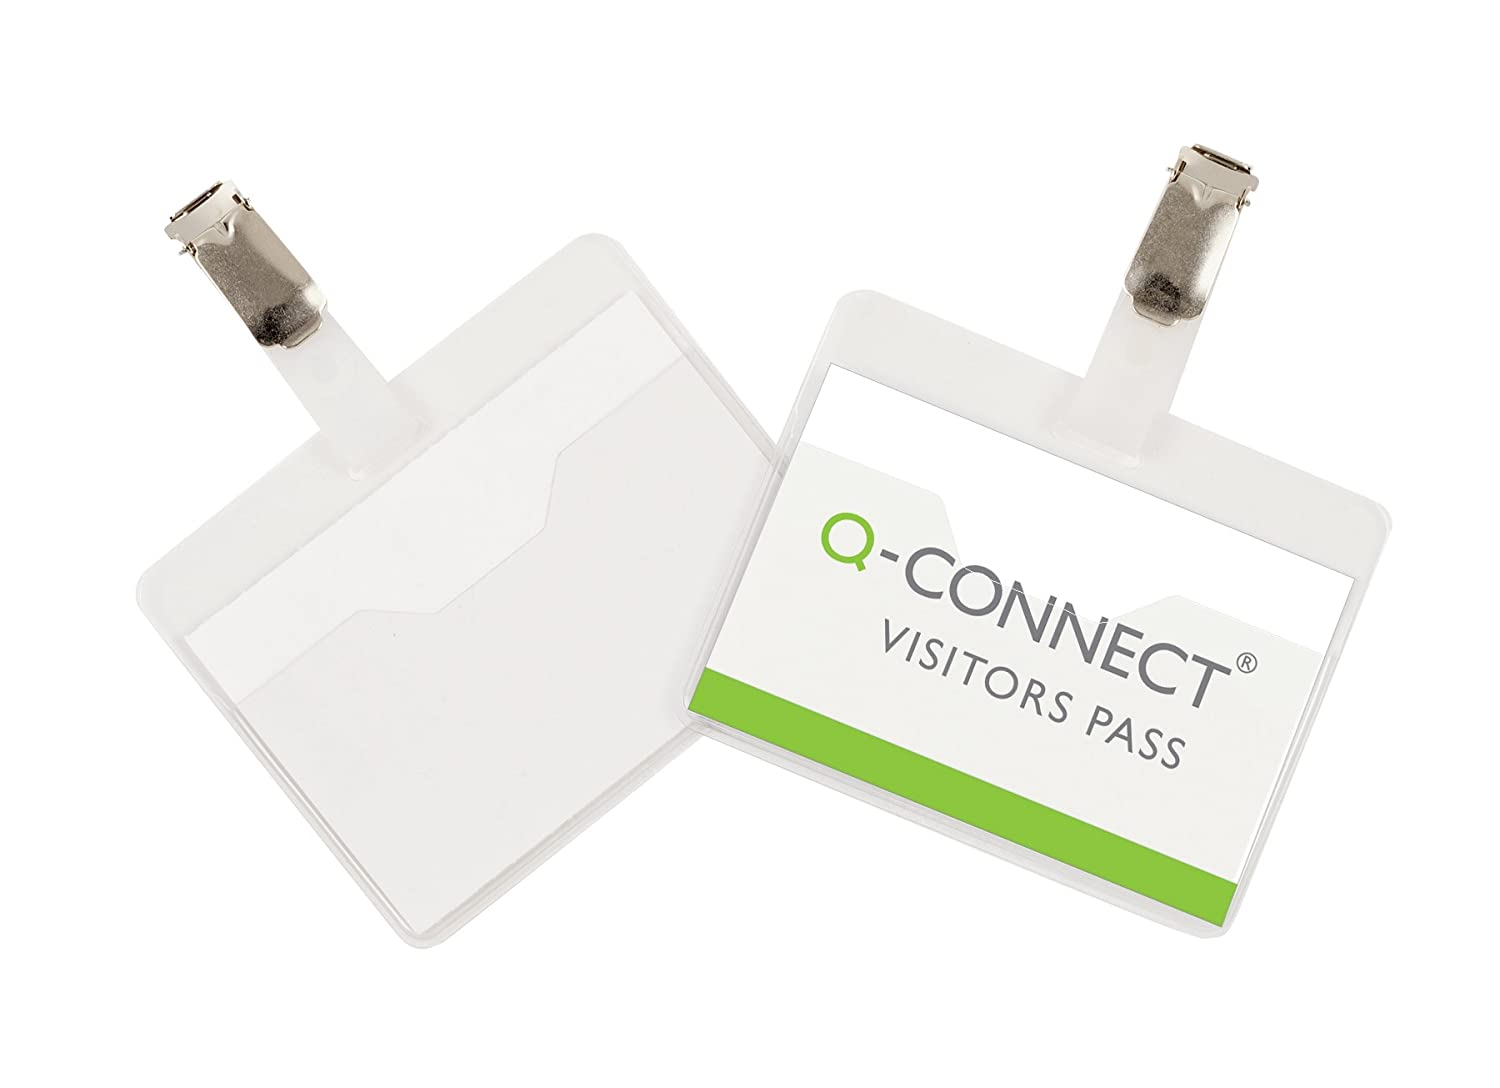 Q-Connect KF01560 Visitor Badge 60x90mm (Pack of 25)